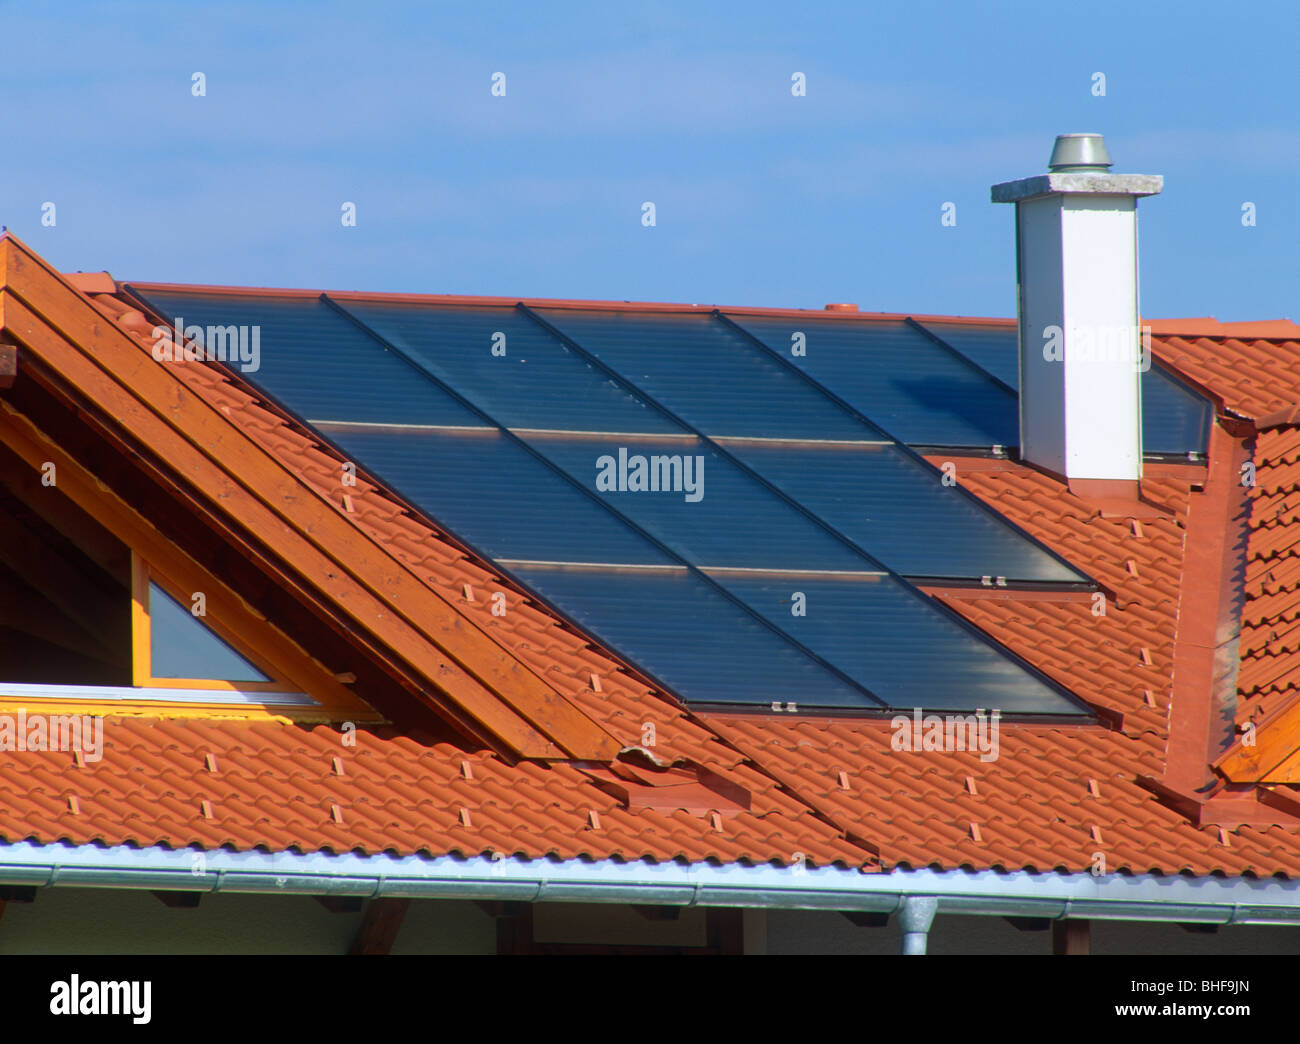 Solar panels in roof of house - Stock Image